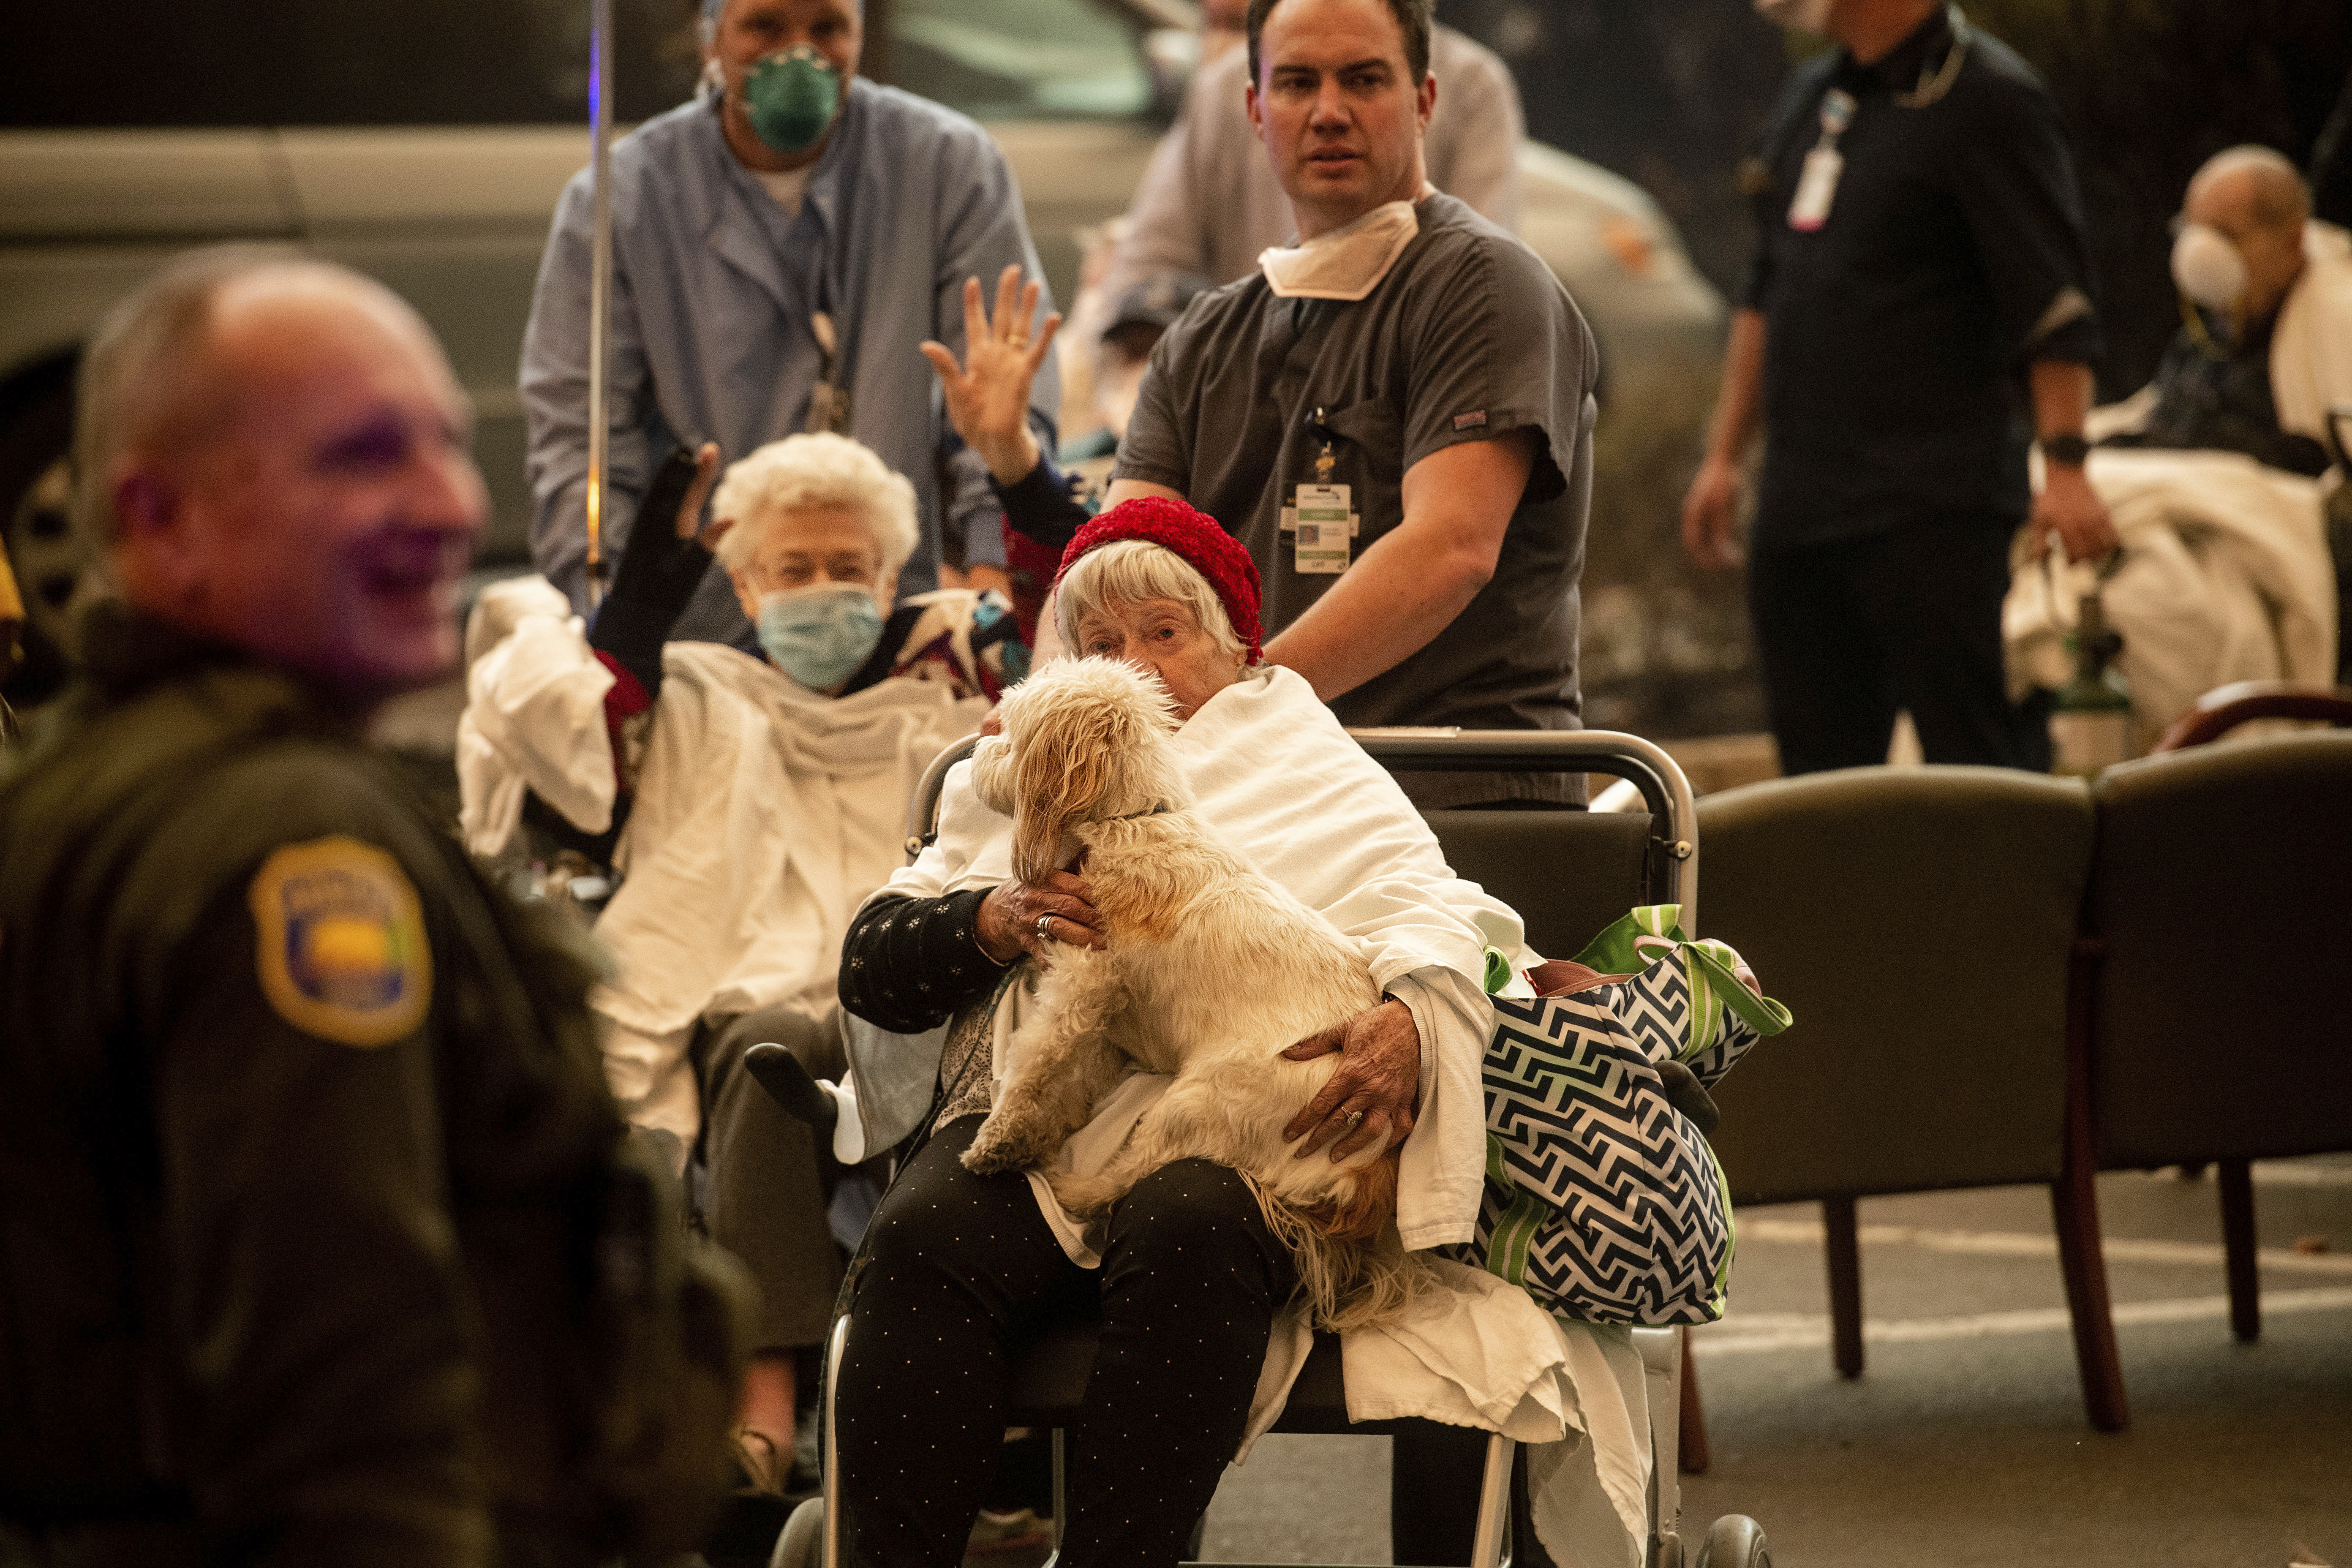 Medical personnel evacuate patients as the Feather River Hospital burns while the Camp Fire rages through Paradise, Calif., on Thursday, Nov. 8, 2018. Tens of thousands of people fled a fast-moving wildfire Thursday in Northern California, some clutching babies and pets as they abandoned vehicles and struck out on foot ahead of the flames that forced the evacuation of an entire town. (AP Photo/Noah Berger)